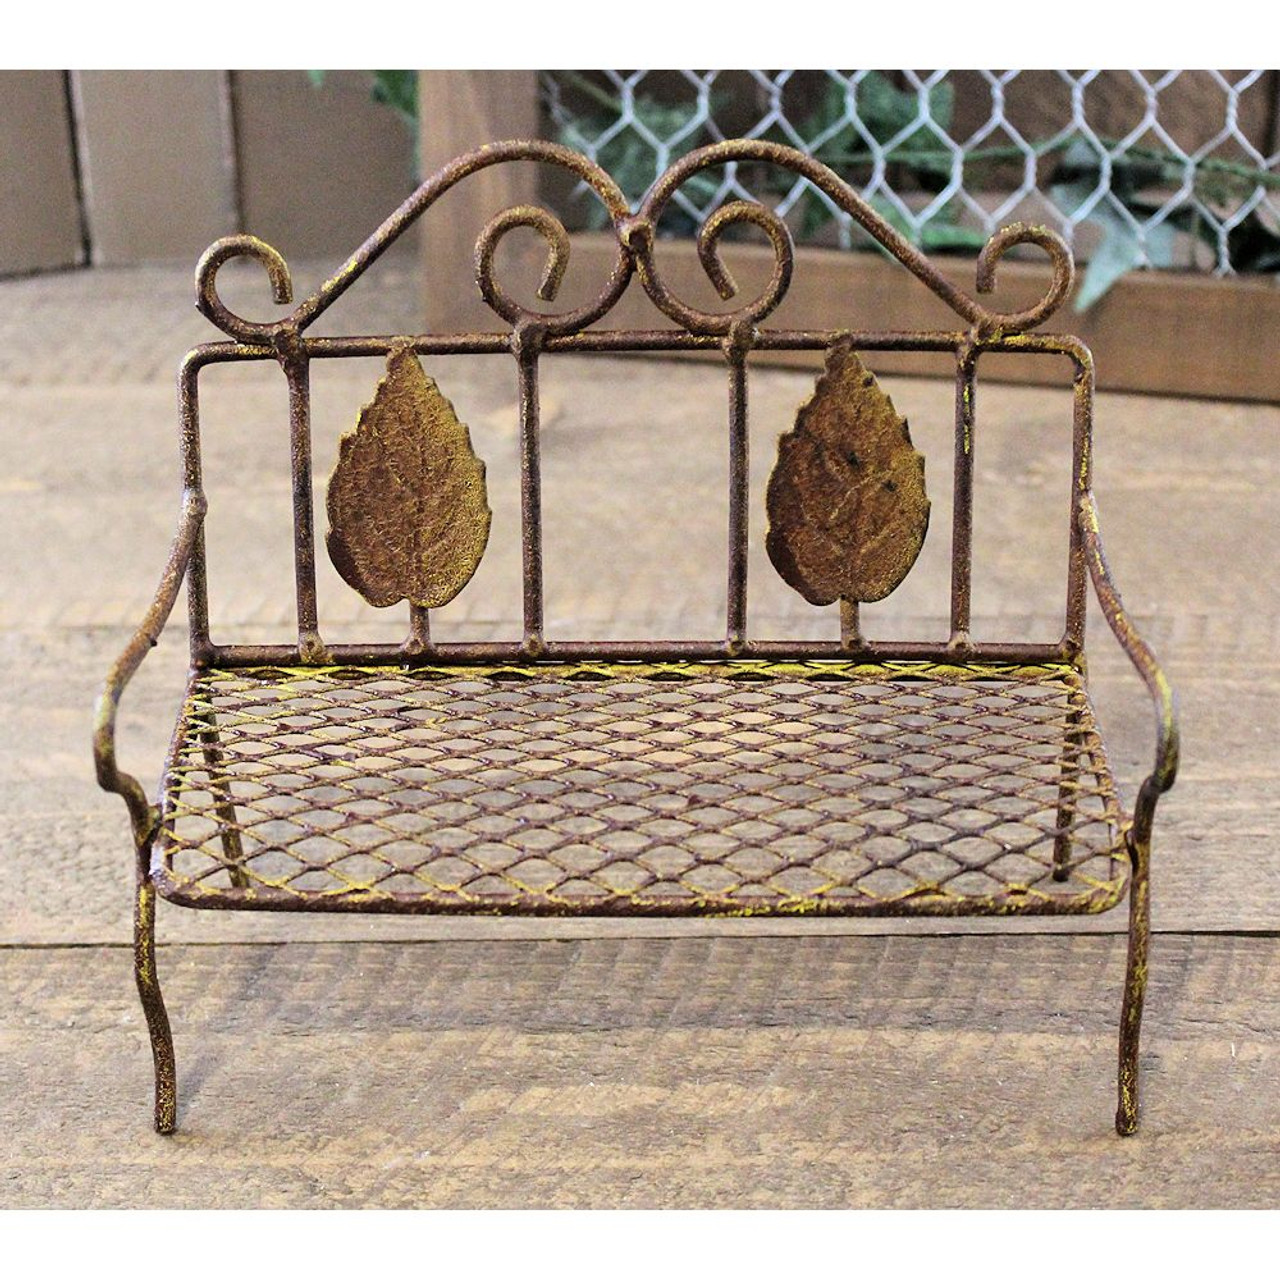 Brilliant Miniature Garden Bench Rusty Wire Country Primitive Cottage Gmtry Best Dining Table And Chair Ideas Images Gmtryco